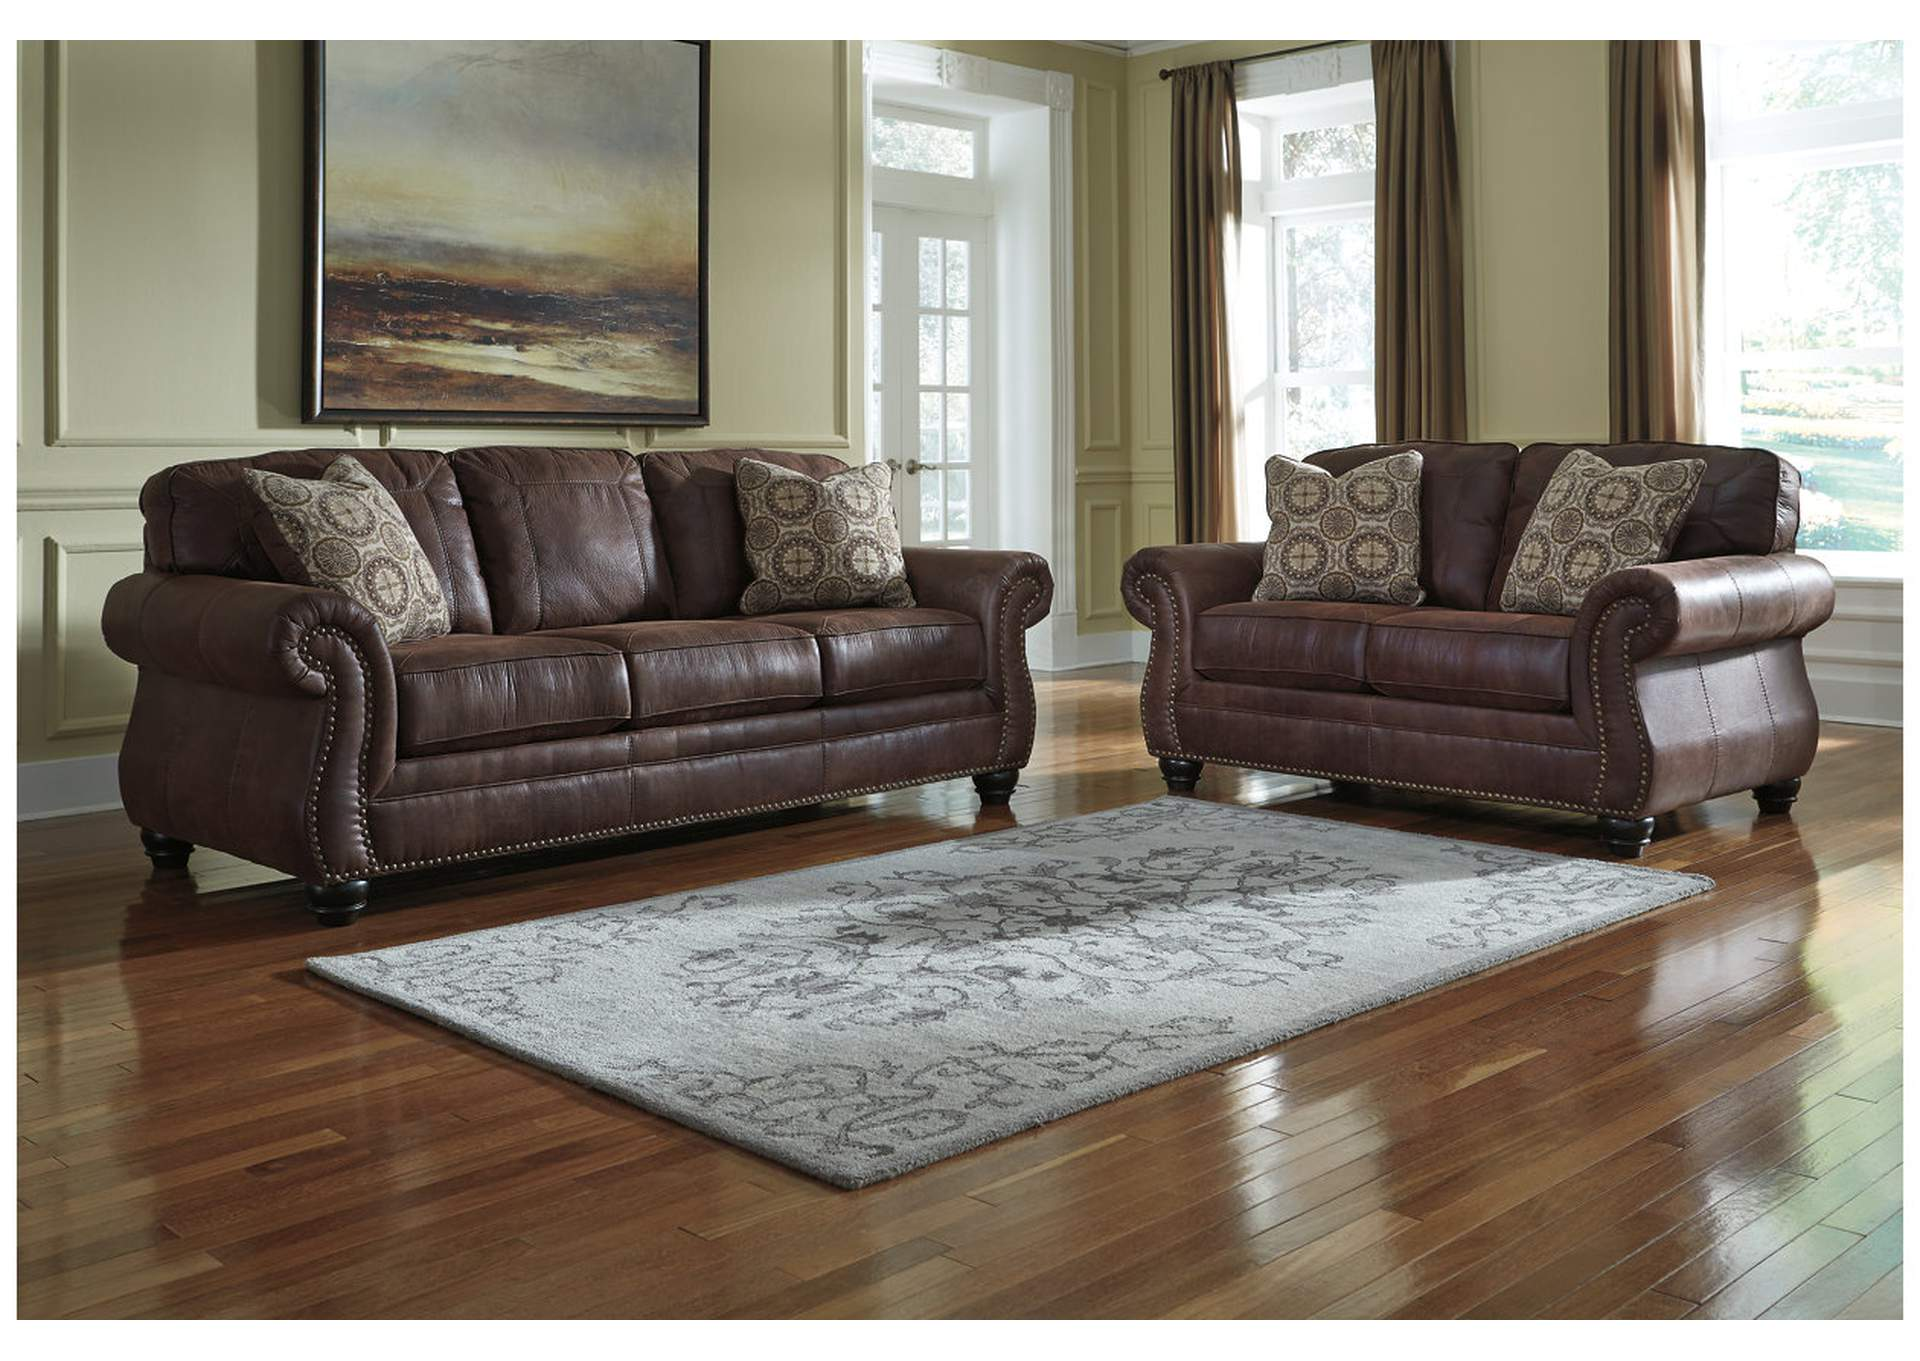 Breville Espresso Sofa and Loveseat,Benchcraft